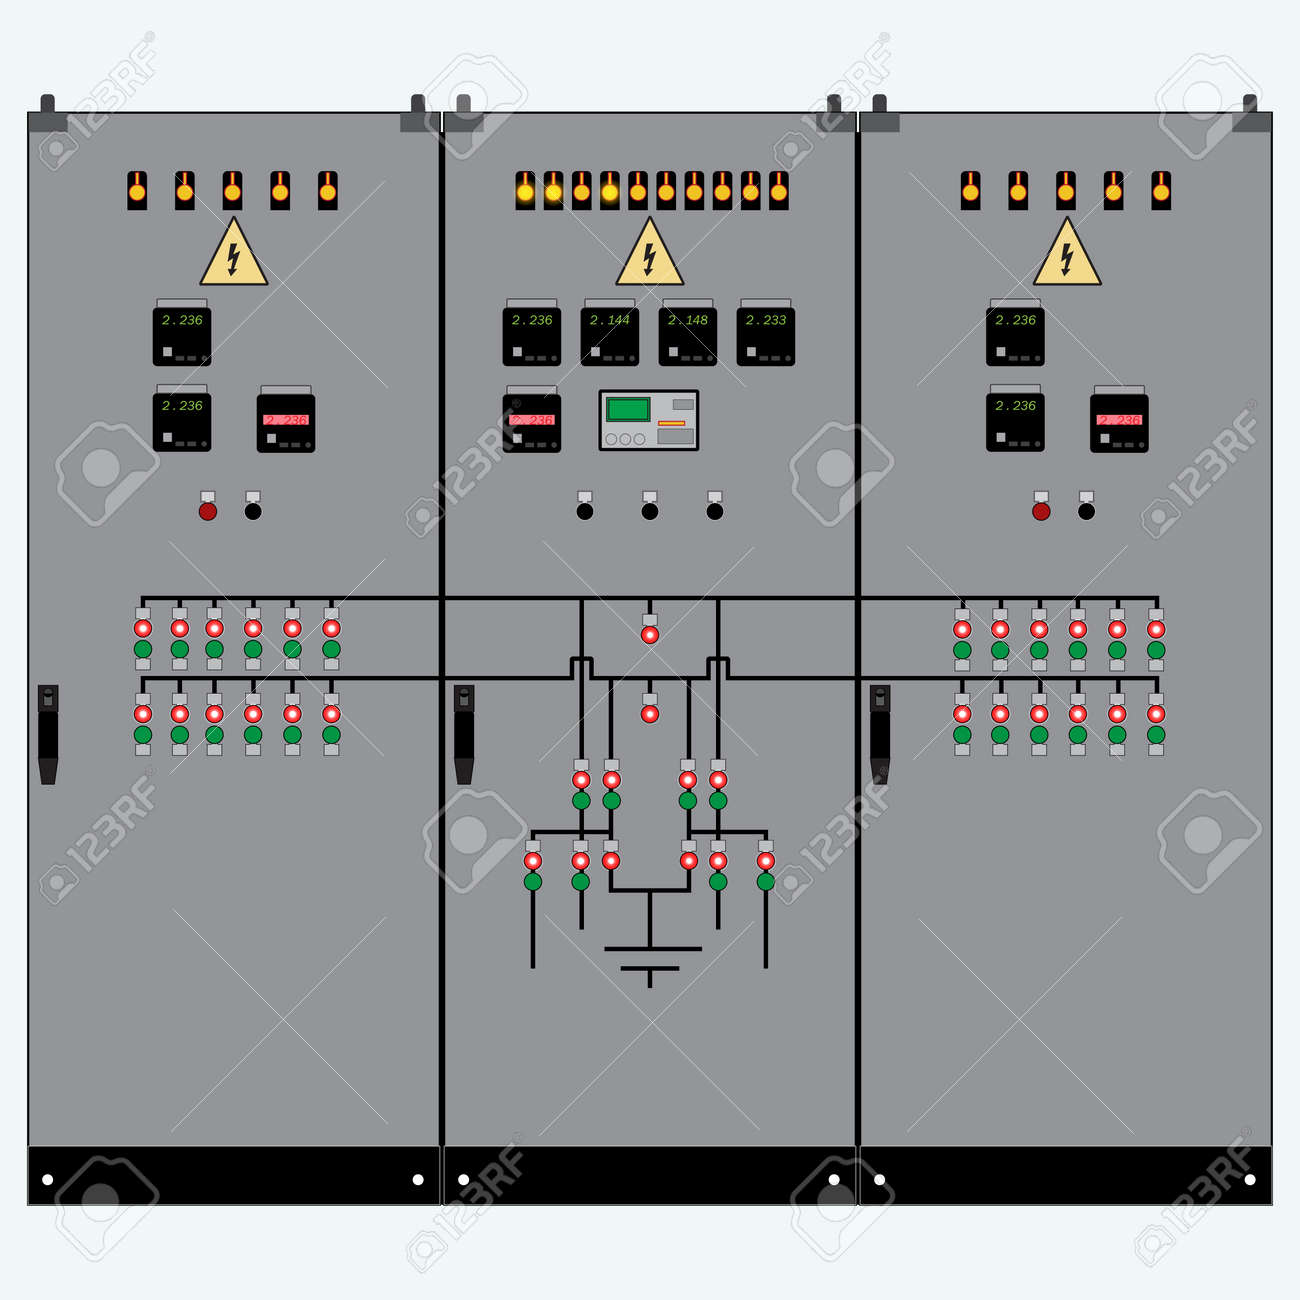 hight resolution of picture of the electrical panel electric meter and circuit breakers high voltage transformer